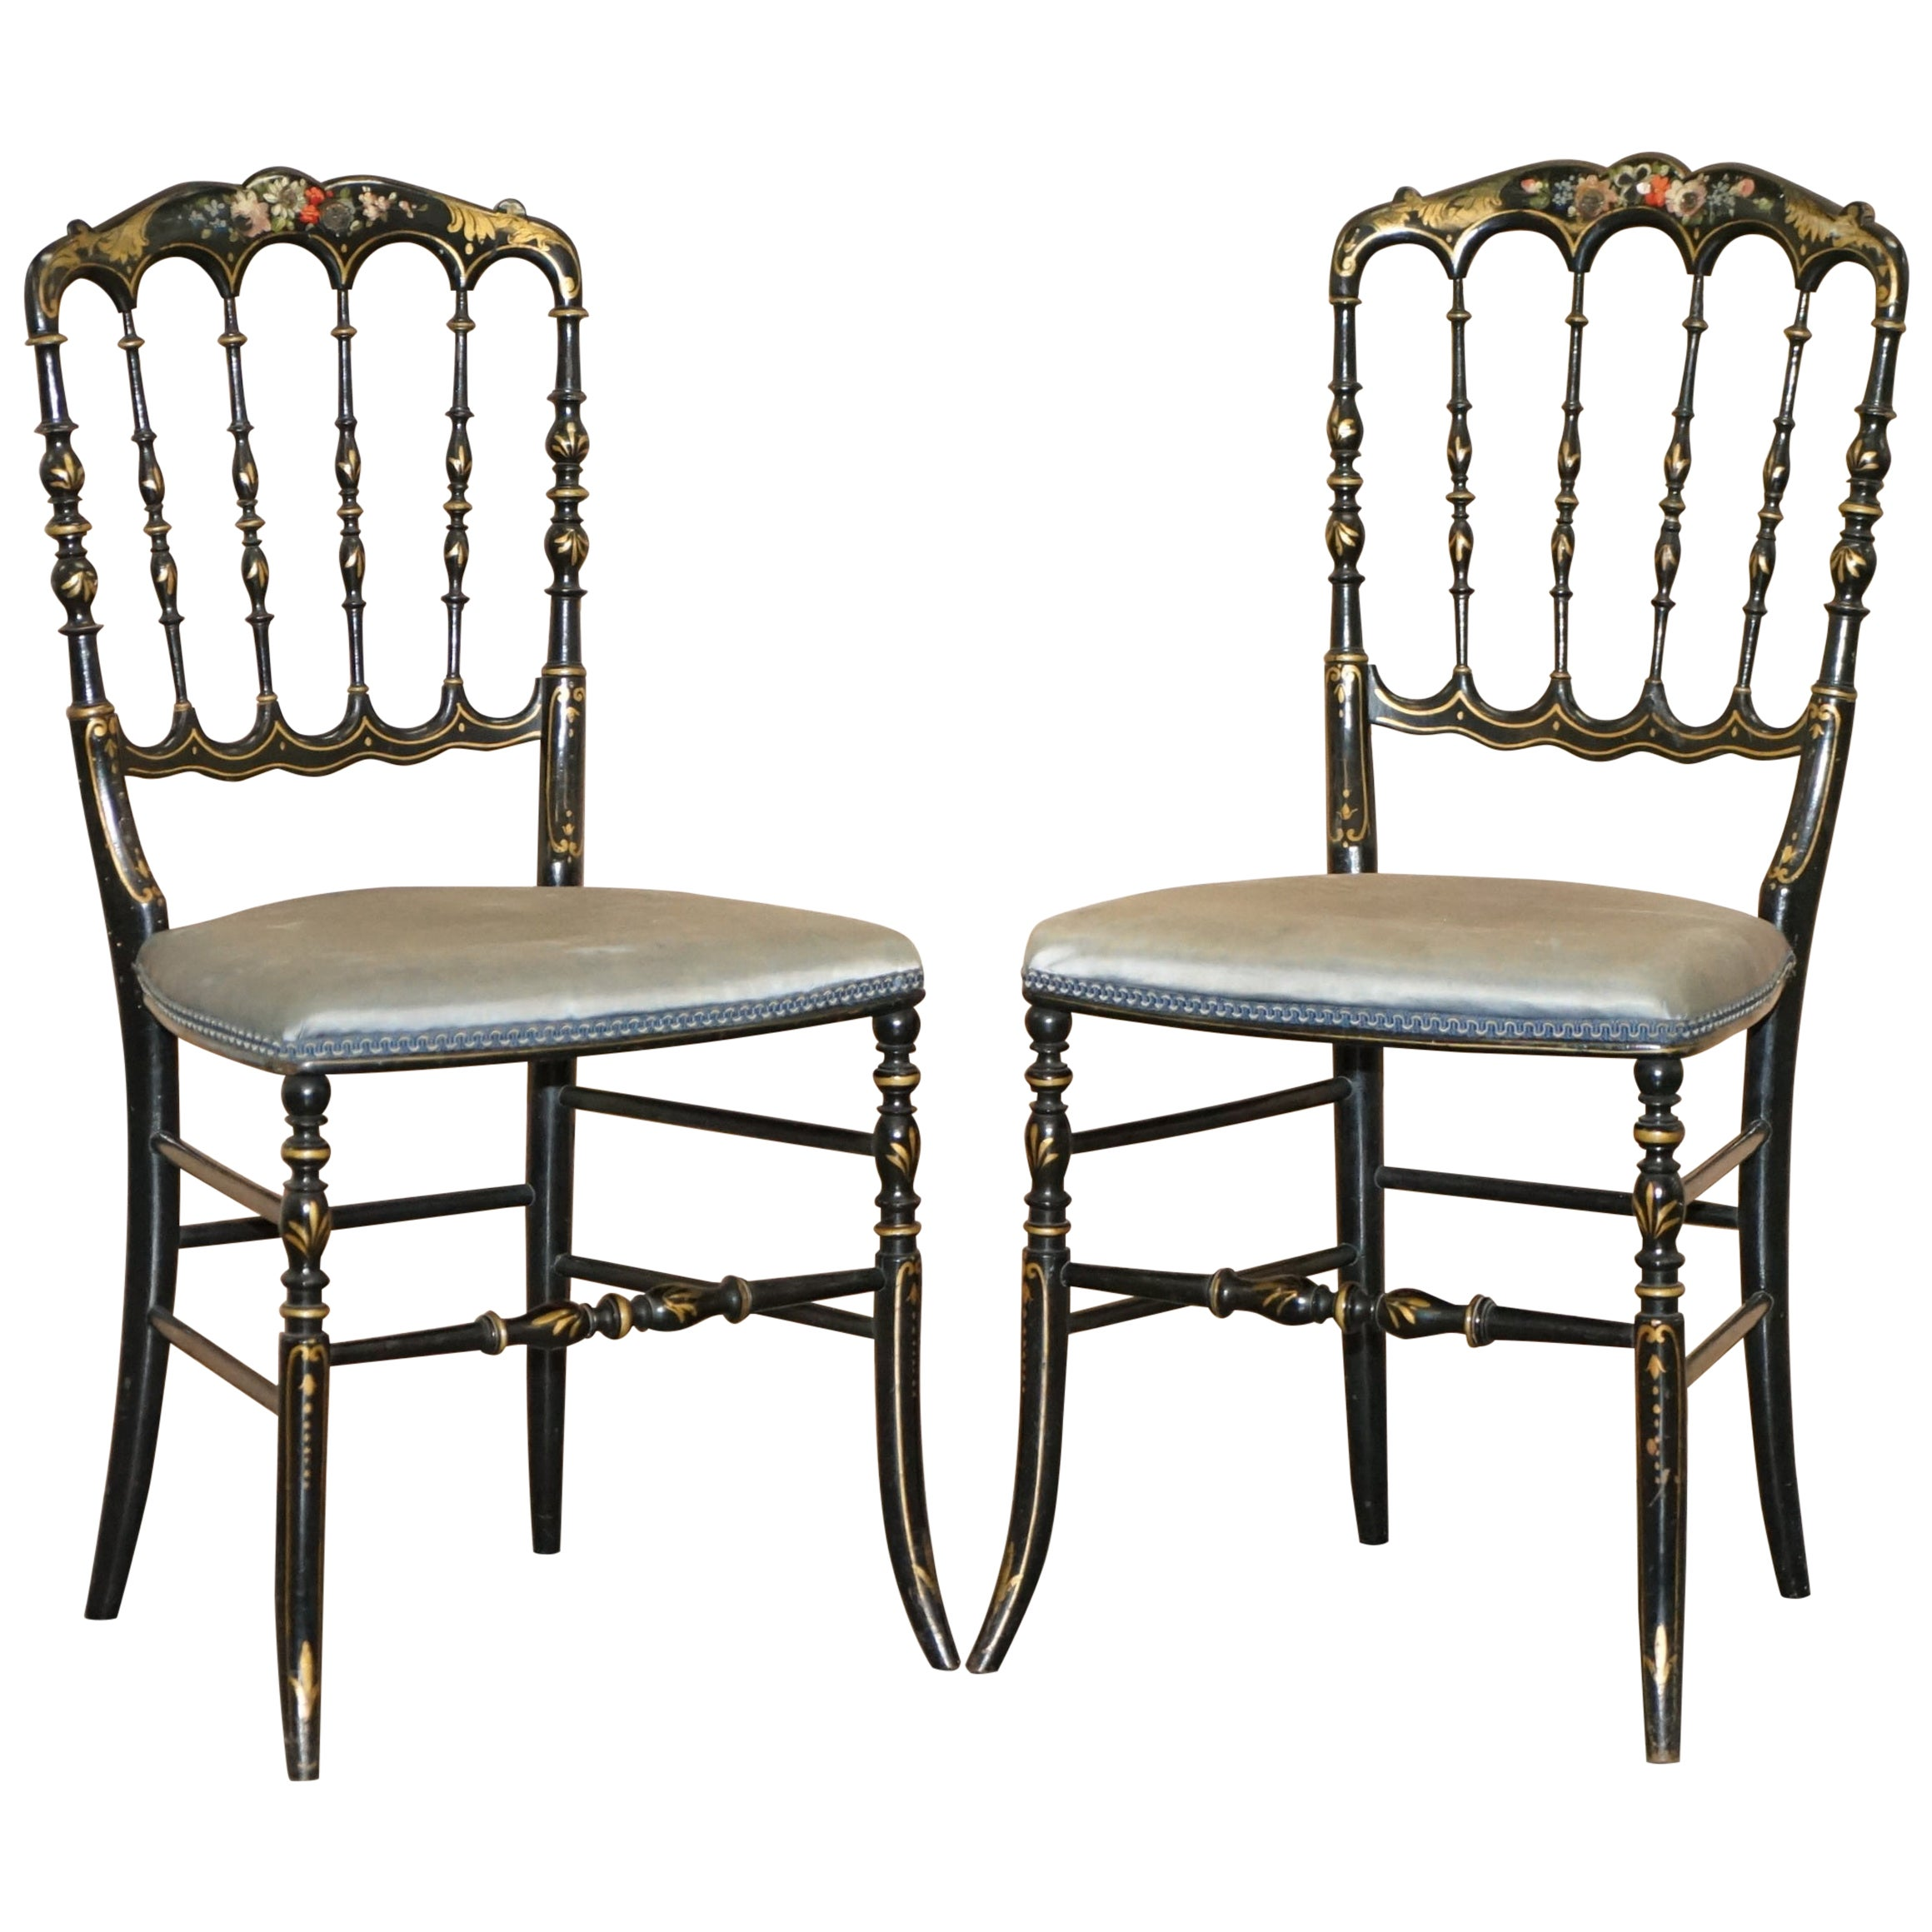 Rare Pair of Regency Floral Hand Painted Ornate Chinoiserie Ebonized Chairs